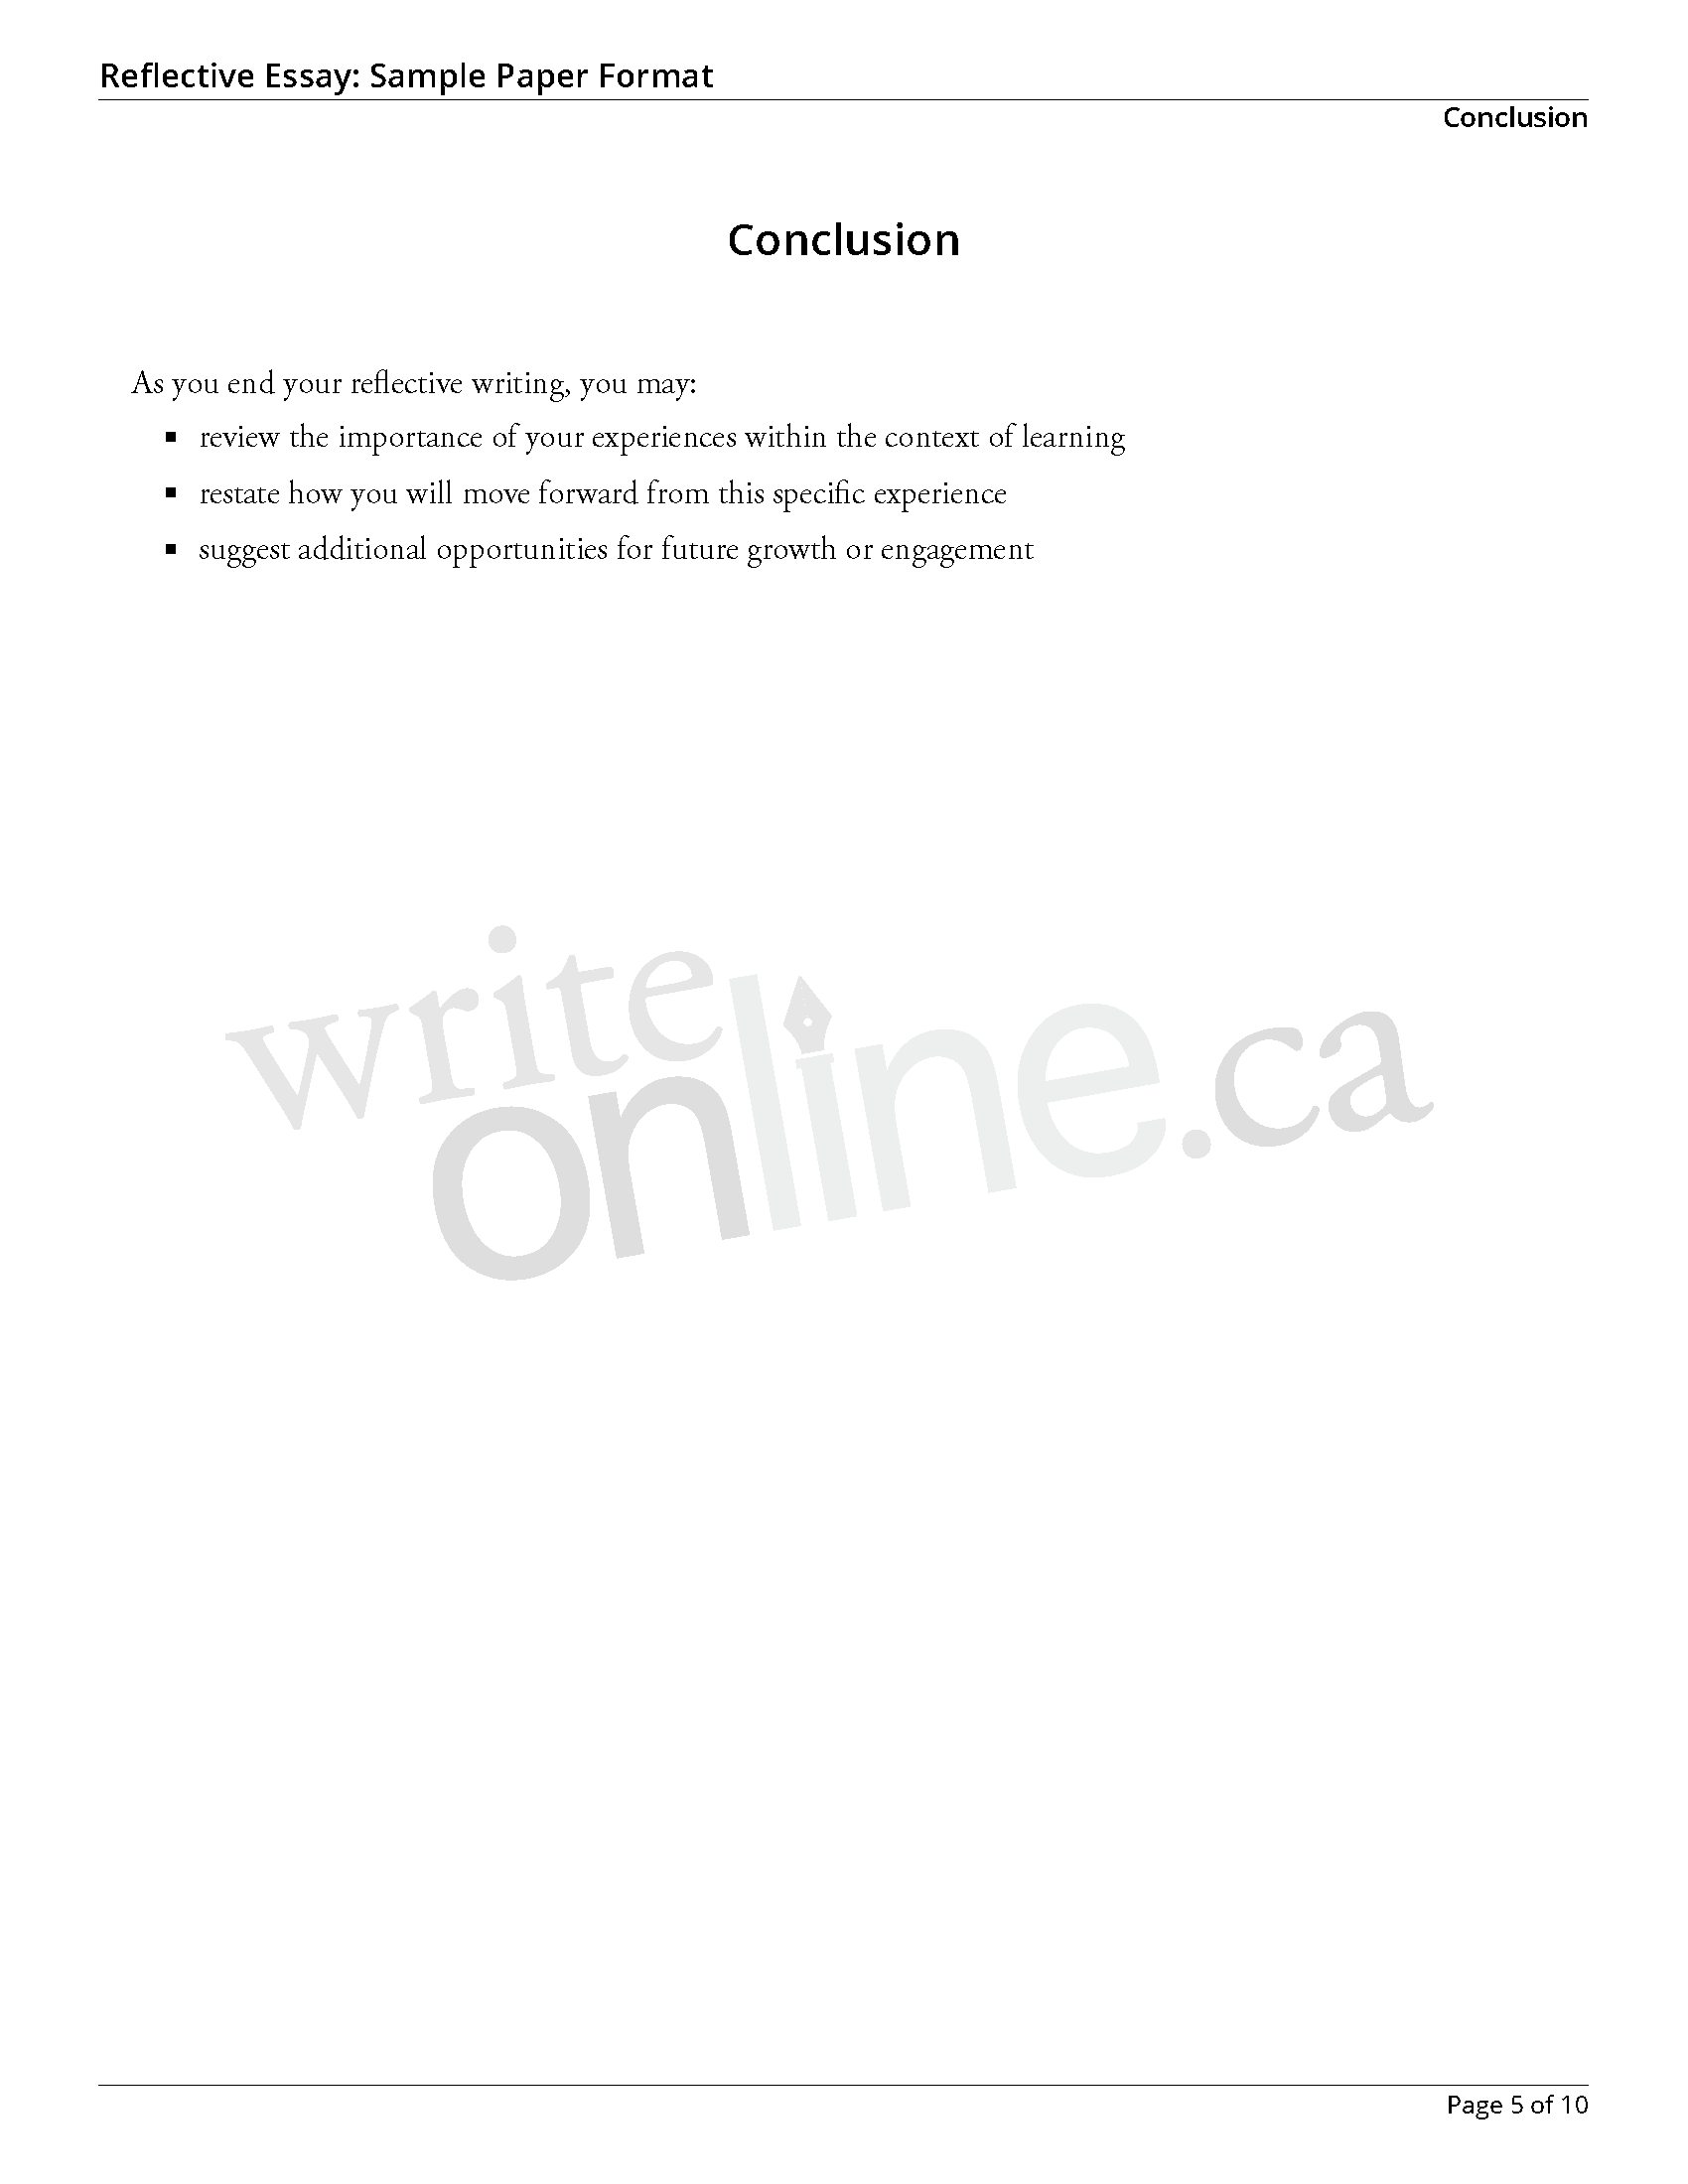 016 Reflectiveessay Sample Page 5 Essay Example How To Write Awesome A Reflection Reflective Introduction On An Article Course Full